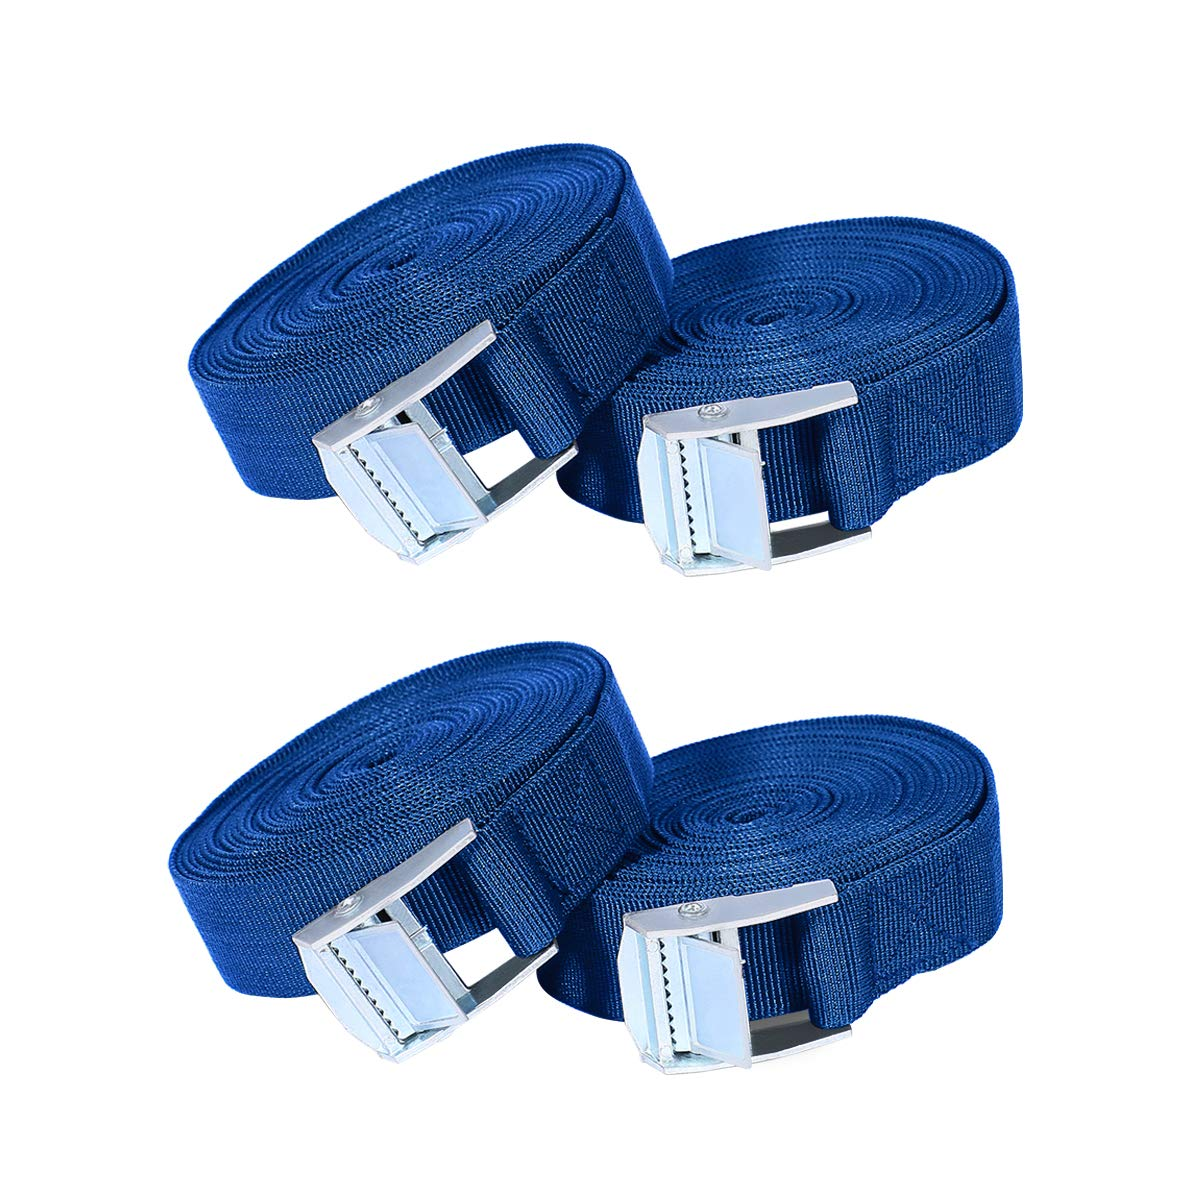 Ratchet Straps, 4 Pack 16ft Ratchet Tie Down Straps Lashing Strap Heavy Duty Tensioning Belts Trailer Cargo Straps with Quick Release Cambuckle for Trucks, Bicycle Carriers, Sup Kayak, Car Luggage AieveDirect